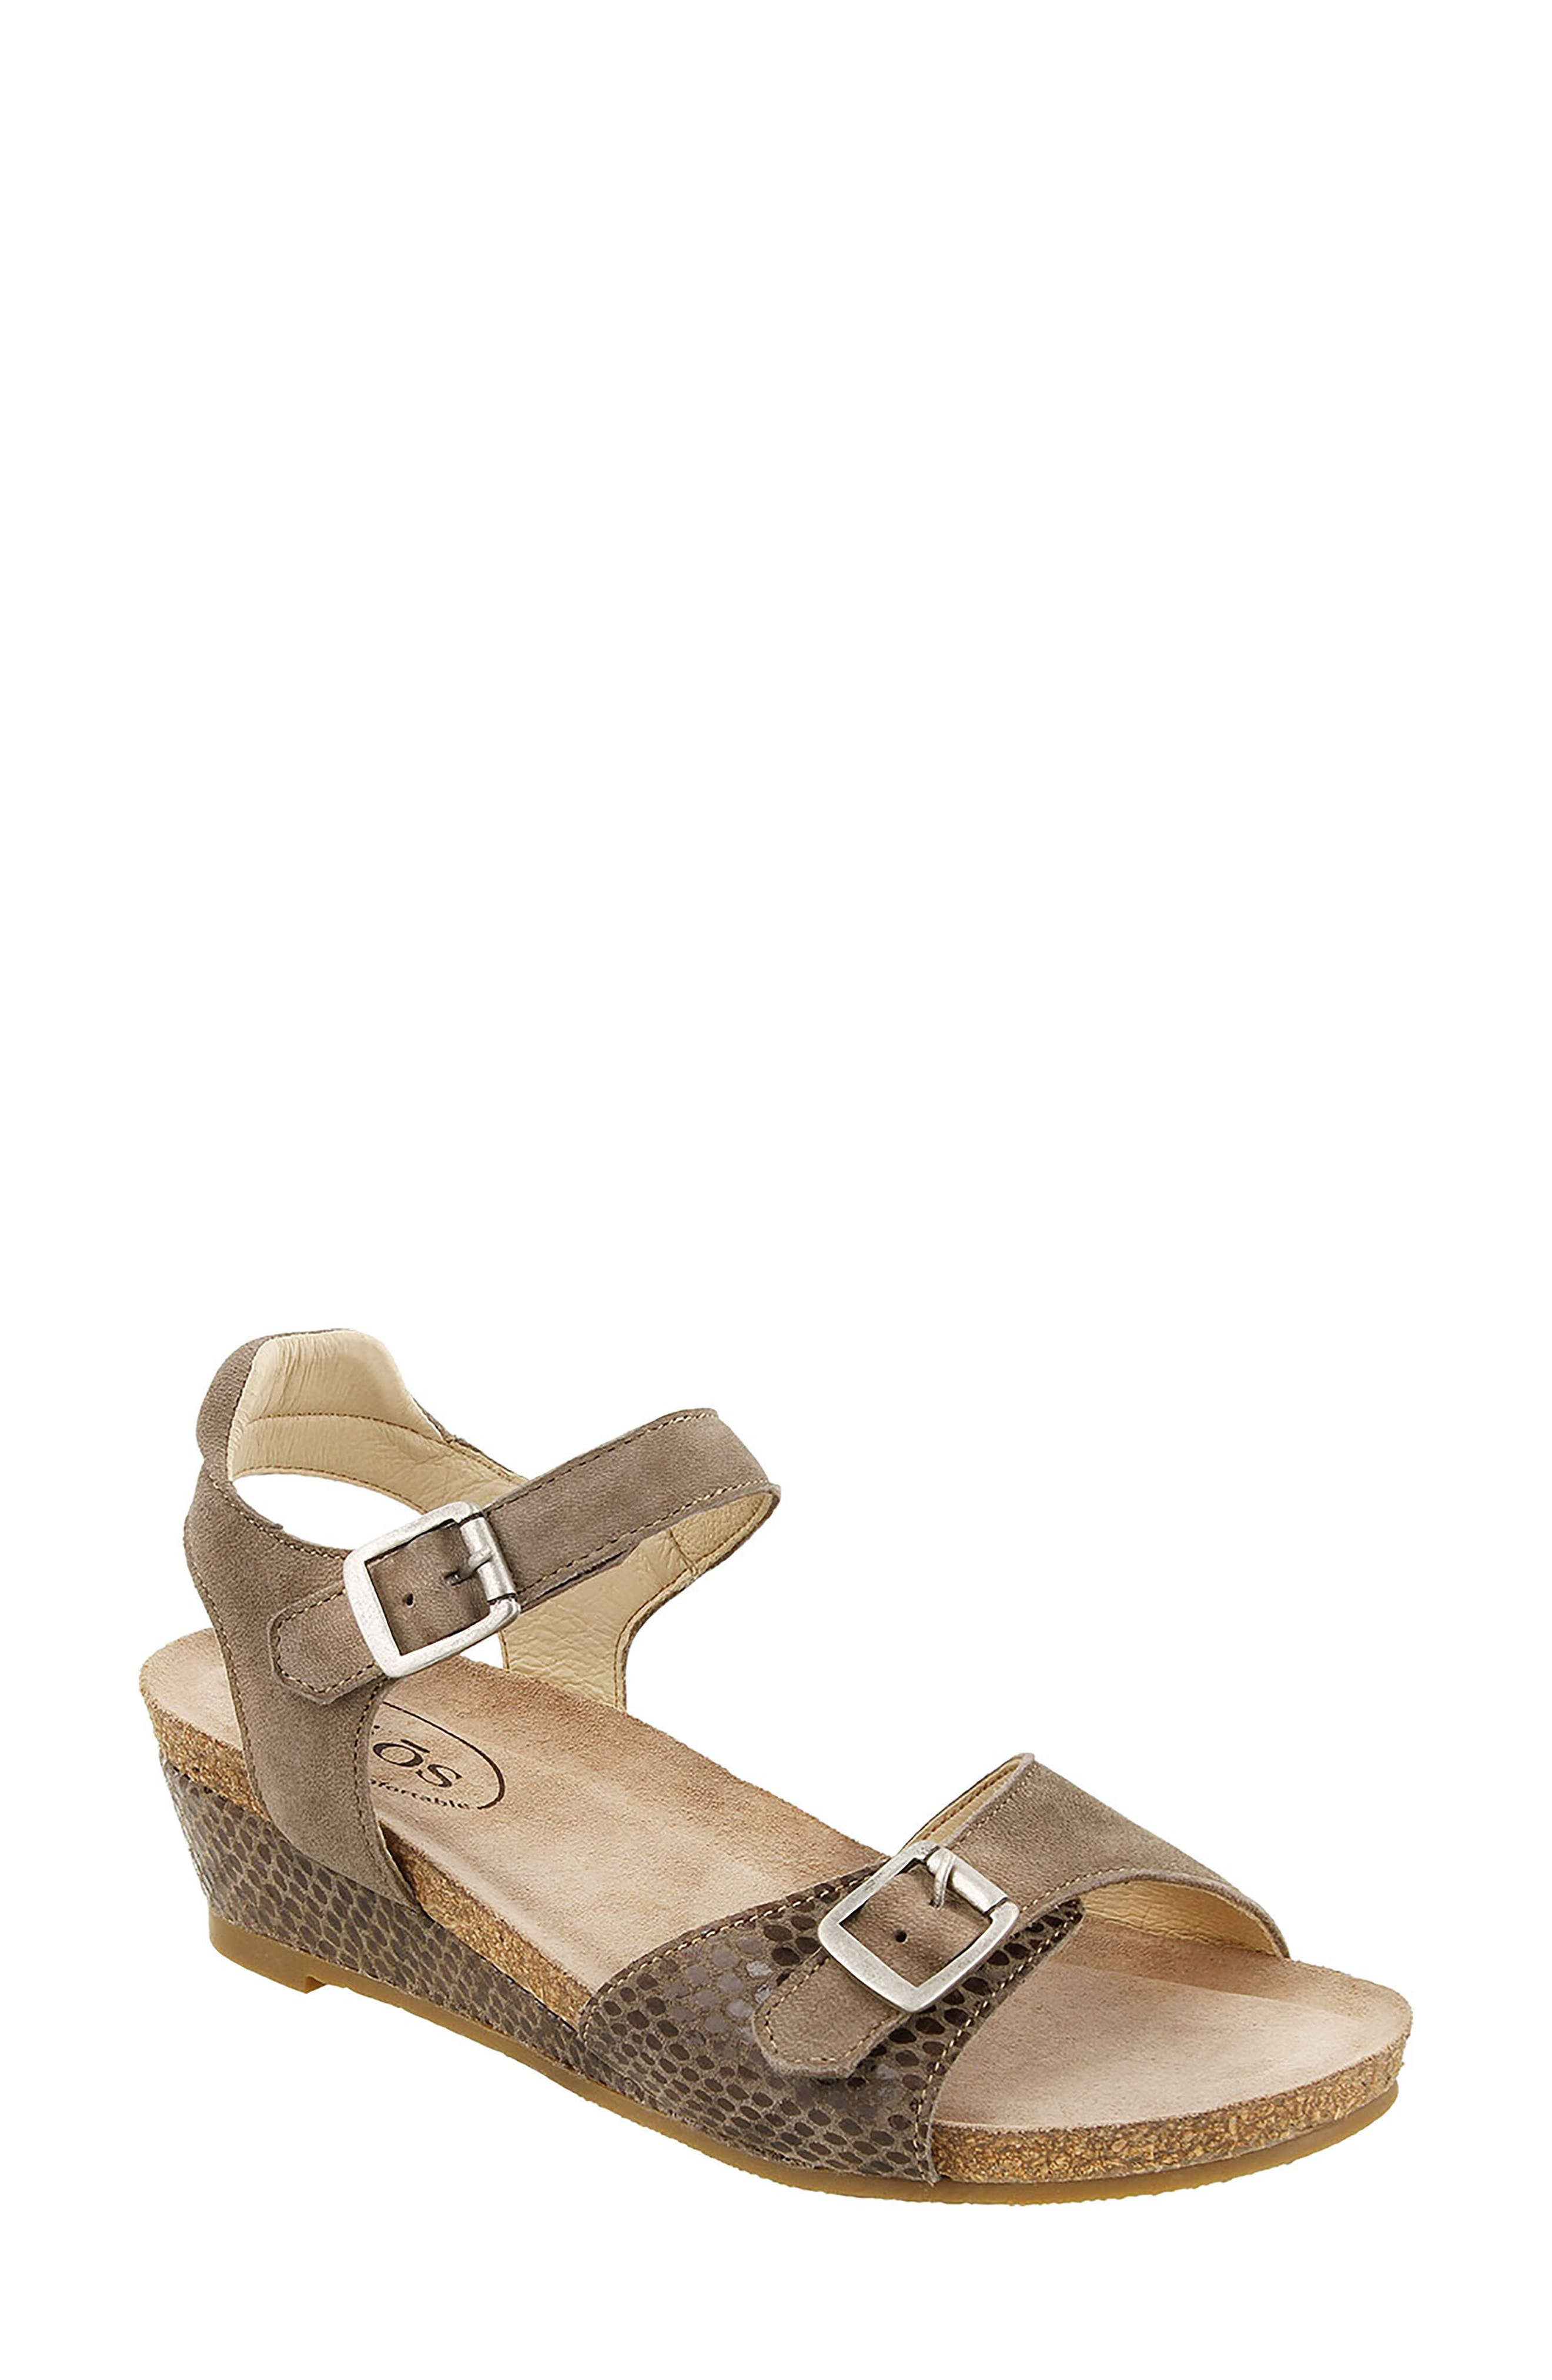 Traveler Wedge Sandal,                         Main,                         color, Taupe Reptile Embossed Leather